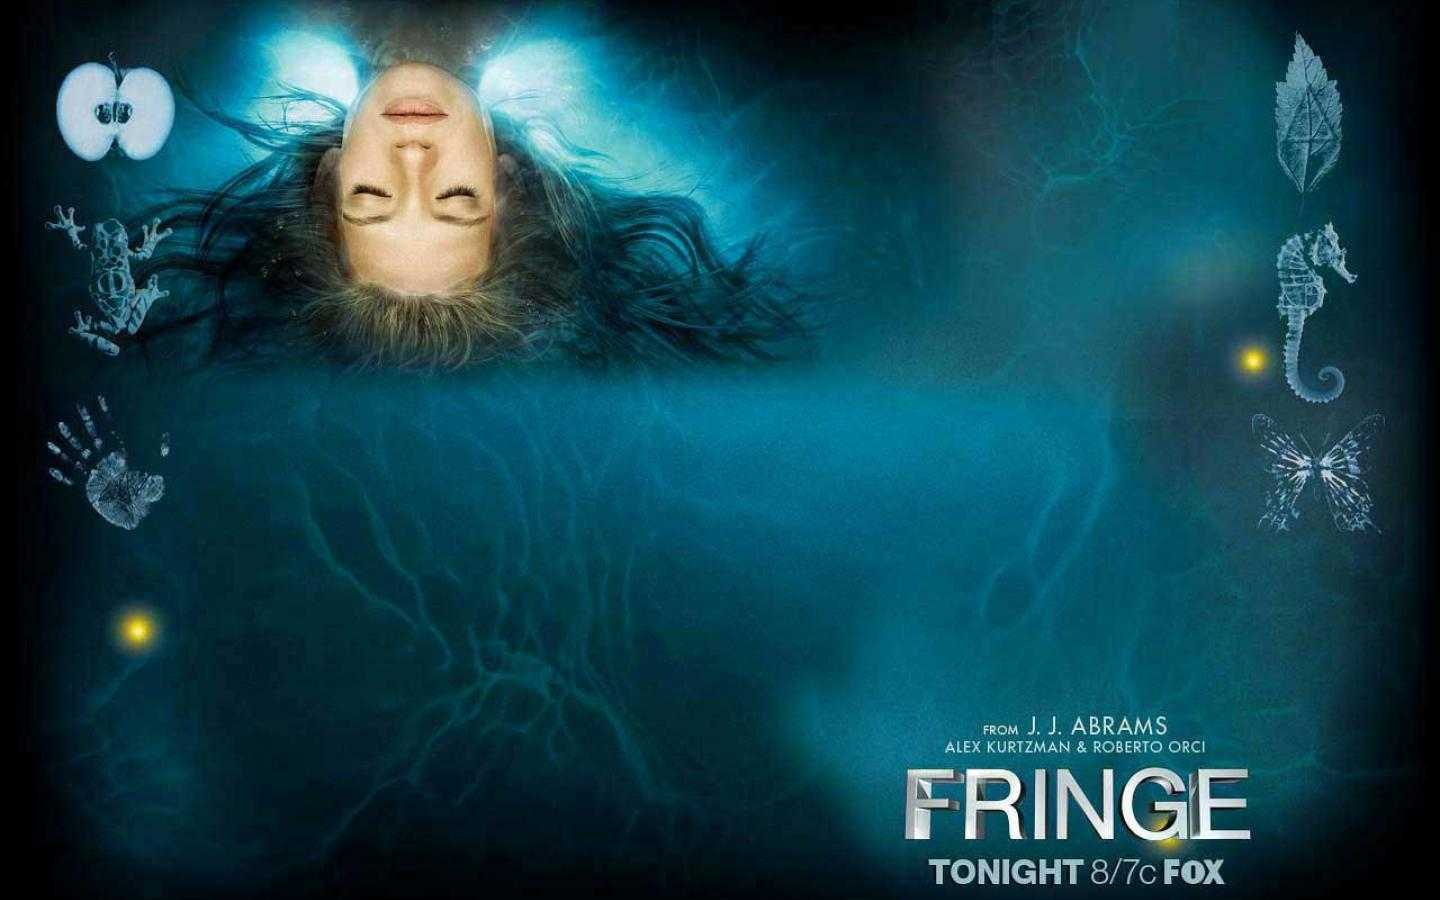 fringe movies hd wallpaper   9026   HQ Desktop Wallpapers 1440x900